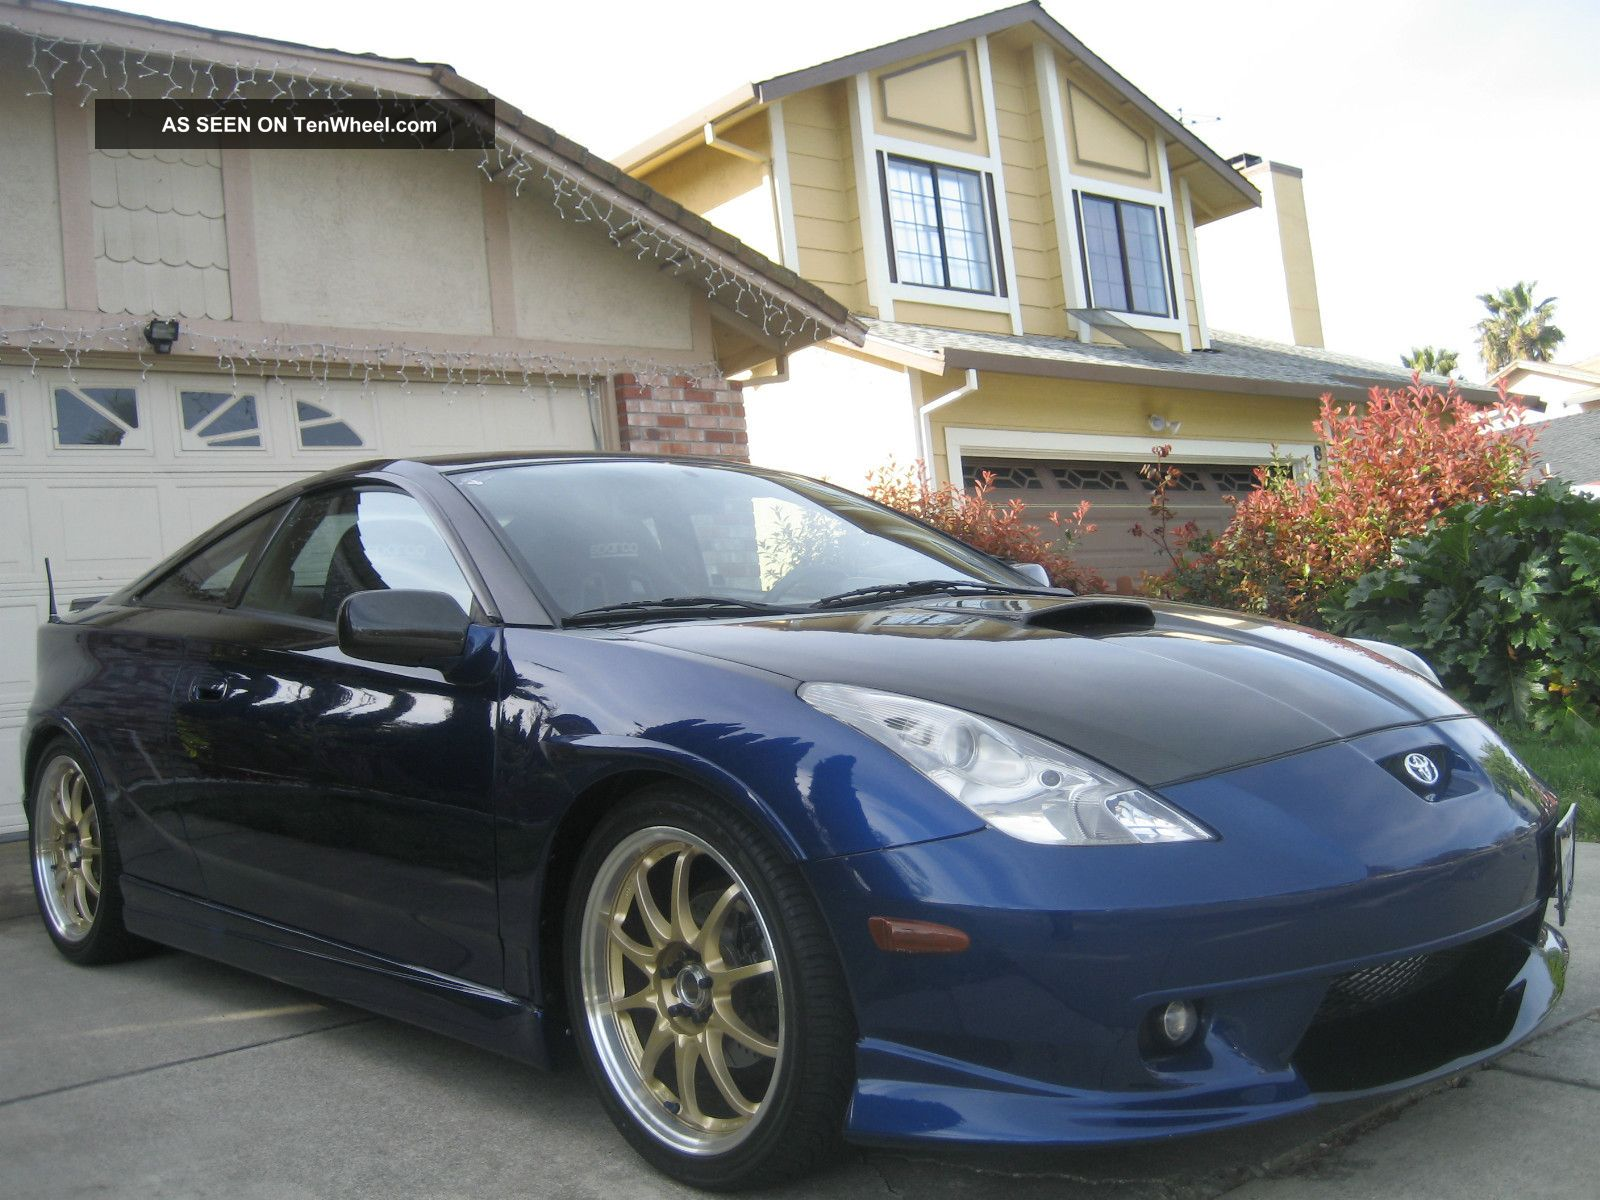 2001 toyota celica gt s 6 speed manual show car very. Black Bedroom Furniture Sets. Home Design Ideas